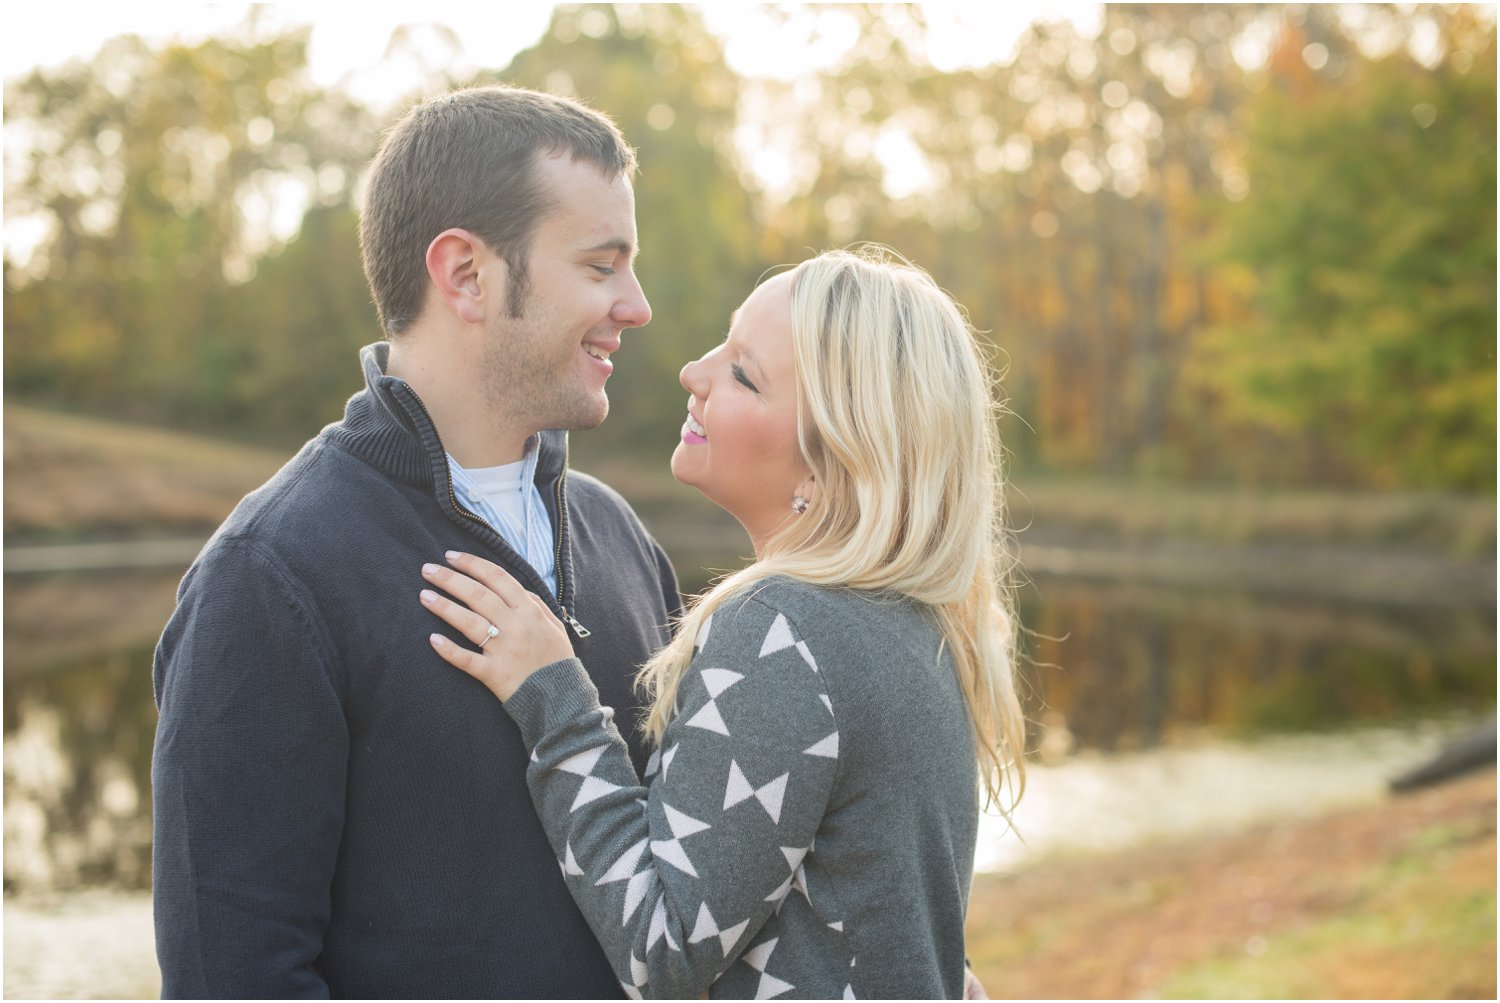 Beachmont-Christian-Camp-Fall-Engagement-Session-Chelsea-Blanch-Photography-12